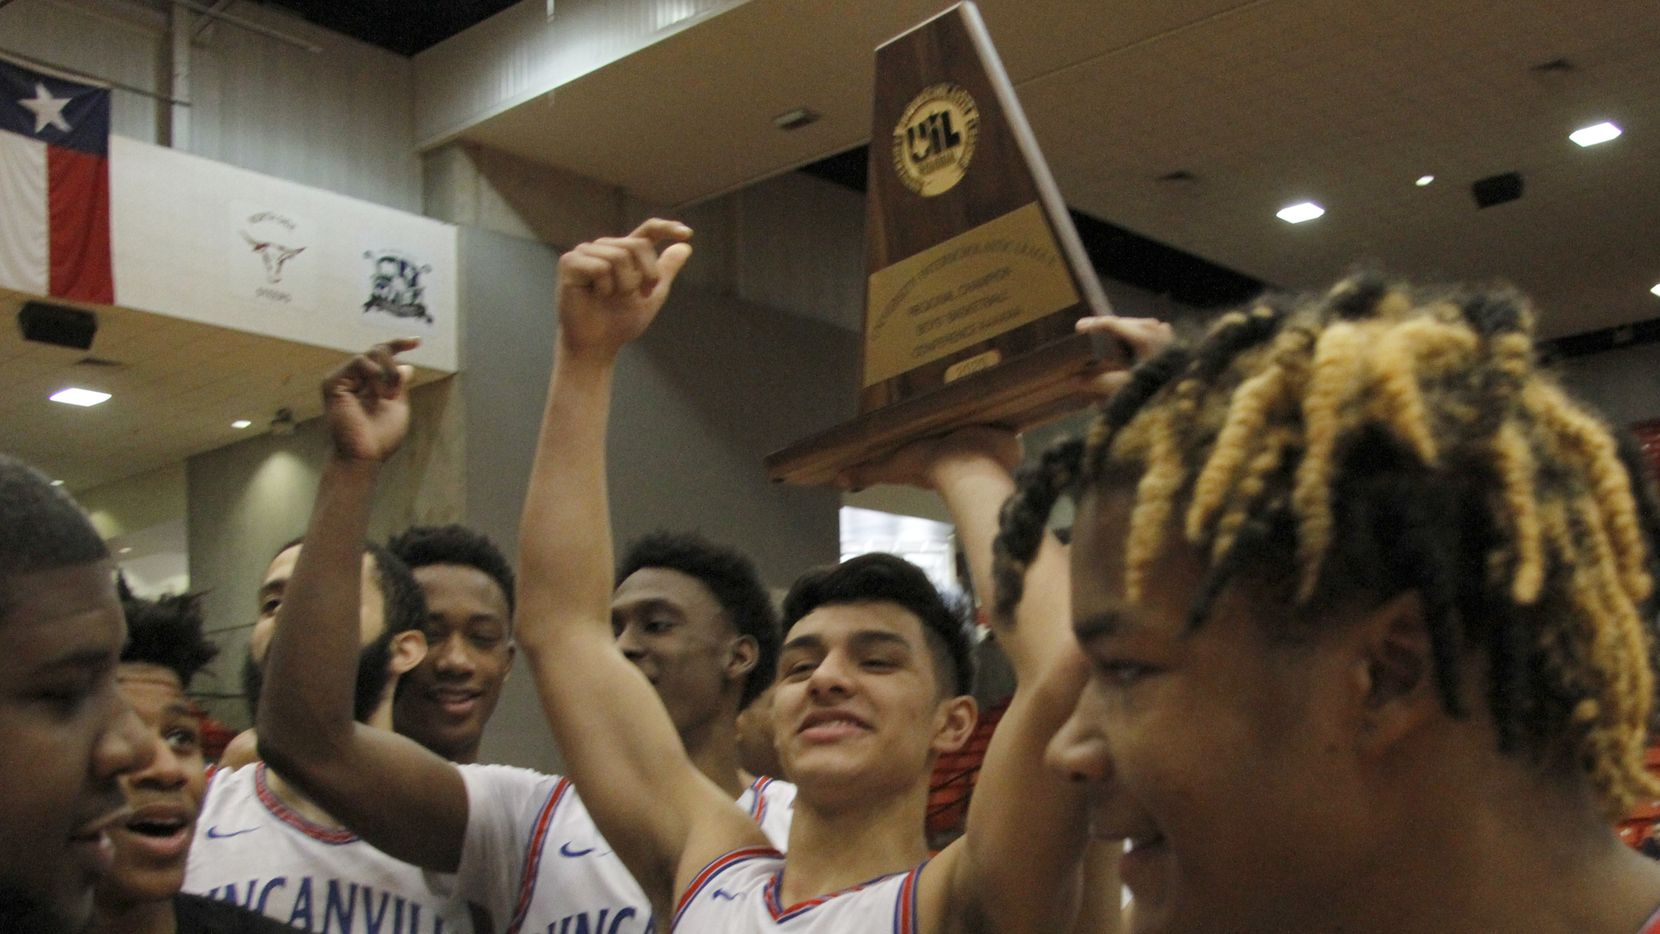 Duncanville guard Juan Reyna (1) raises the Class 6A Region 1 championship trophy as he celebrates with teammates following the Panthers' 59-43 victory over Odessa Permian to gain a berth in the UIL state tournament. The two teams played in the Class 6A Region 1 championship boys basketball playoff game at Wilkerson-Greines Activity Center in Fort Worth on March 7, 2020.